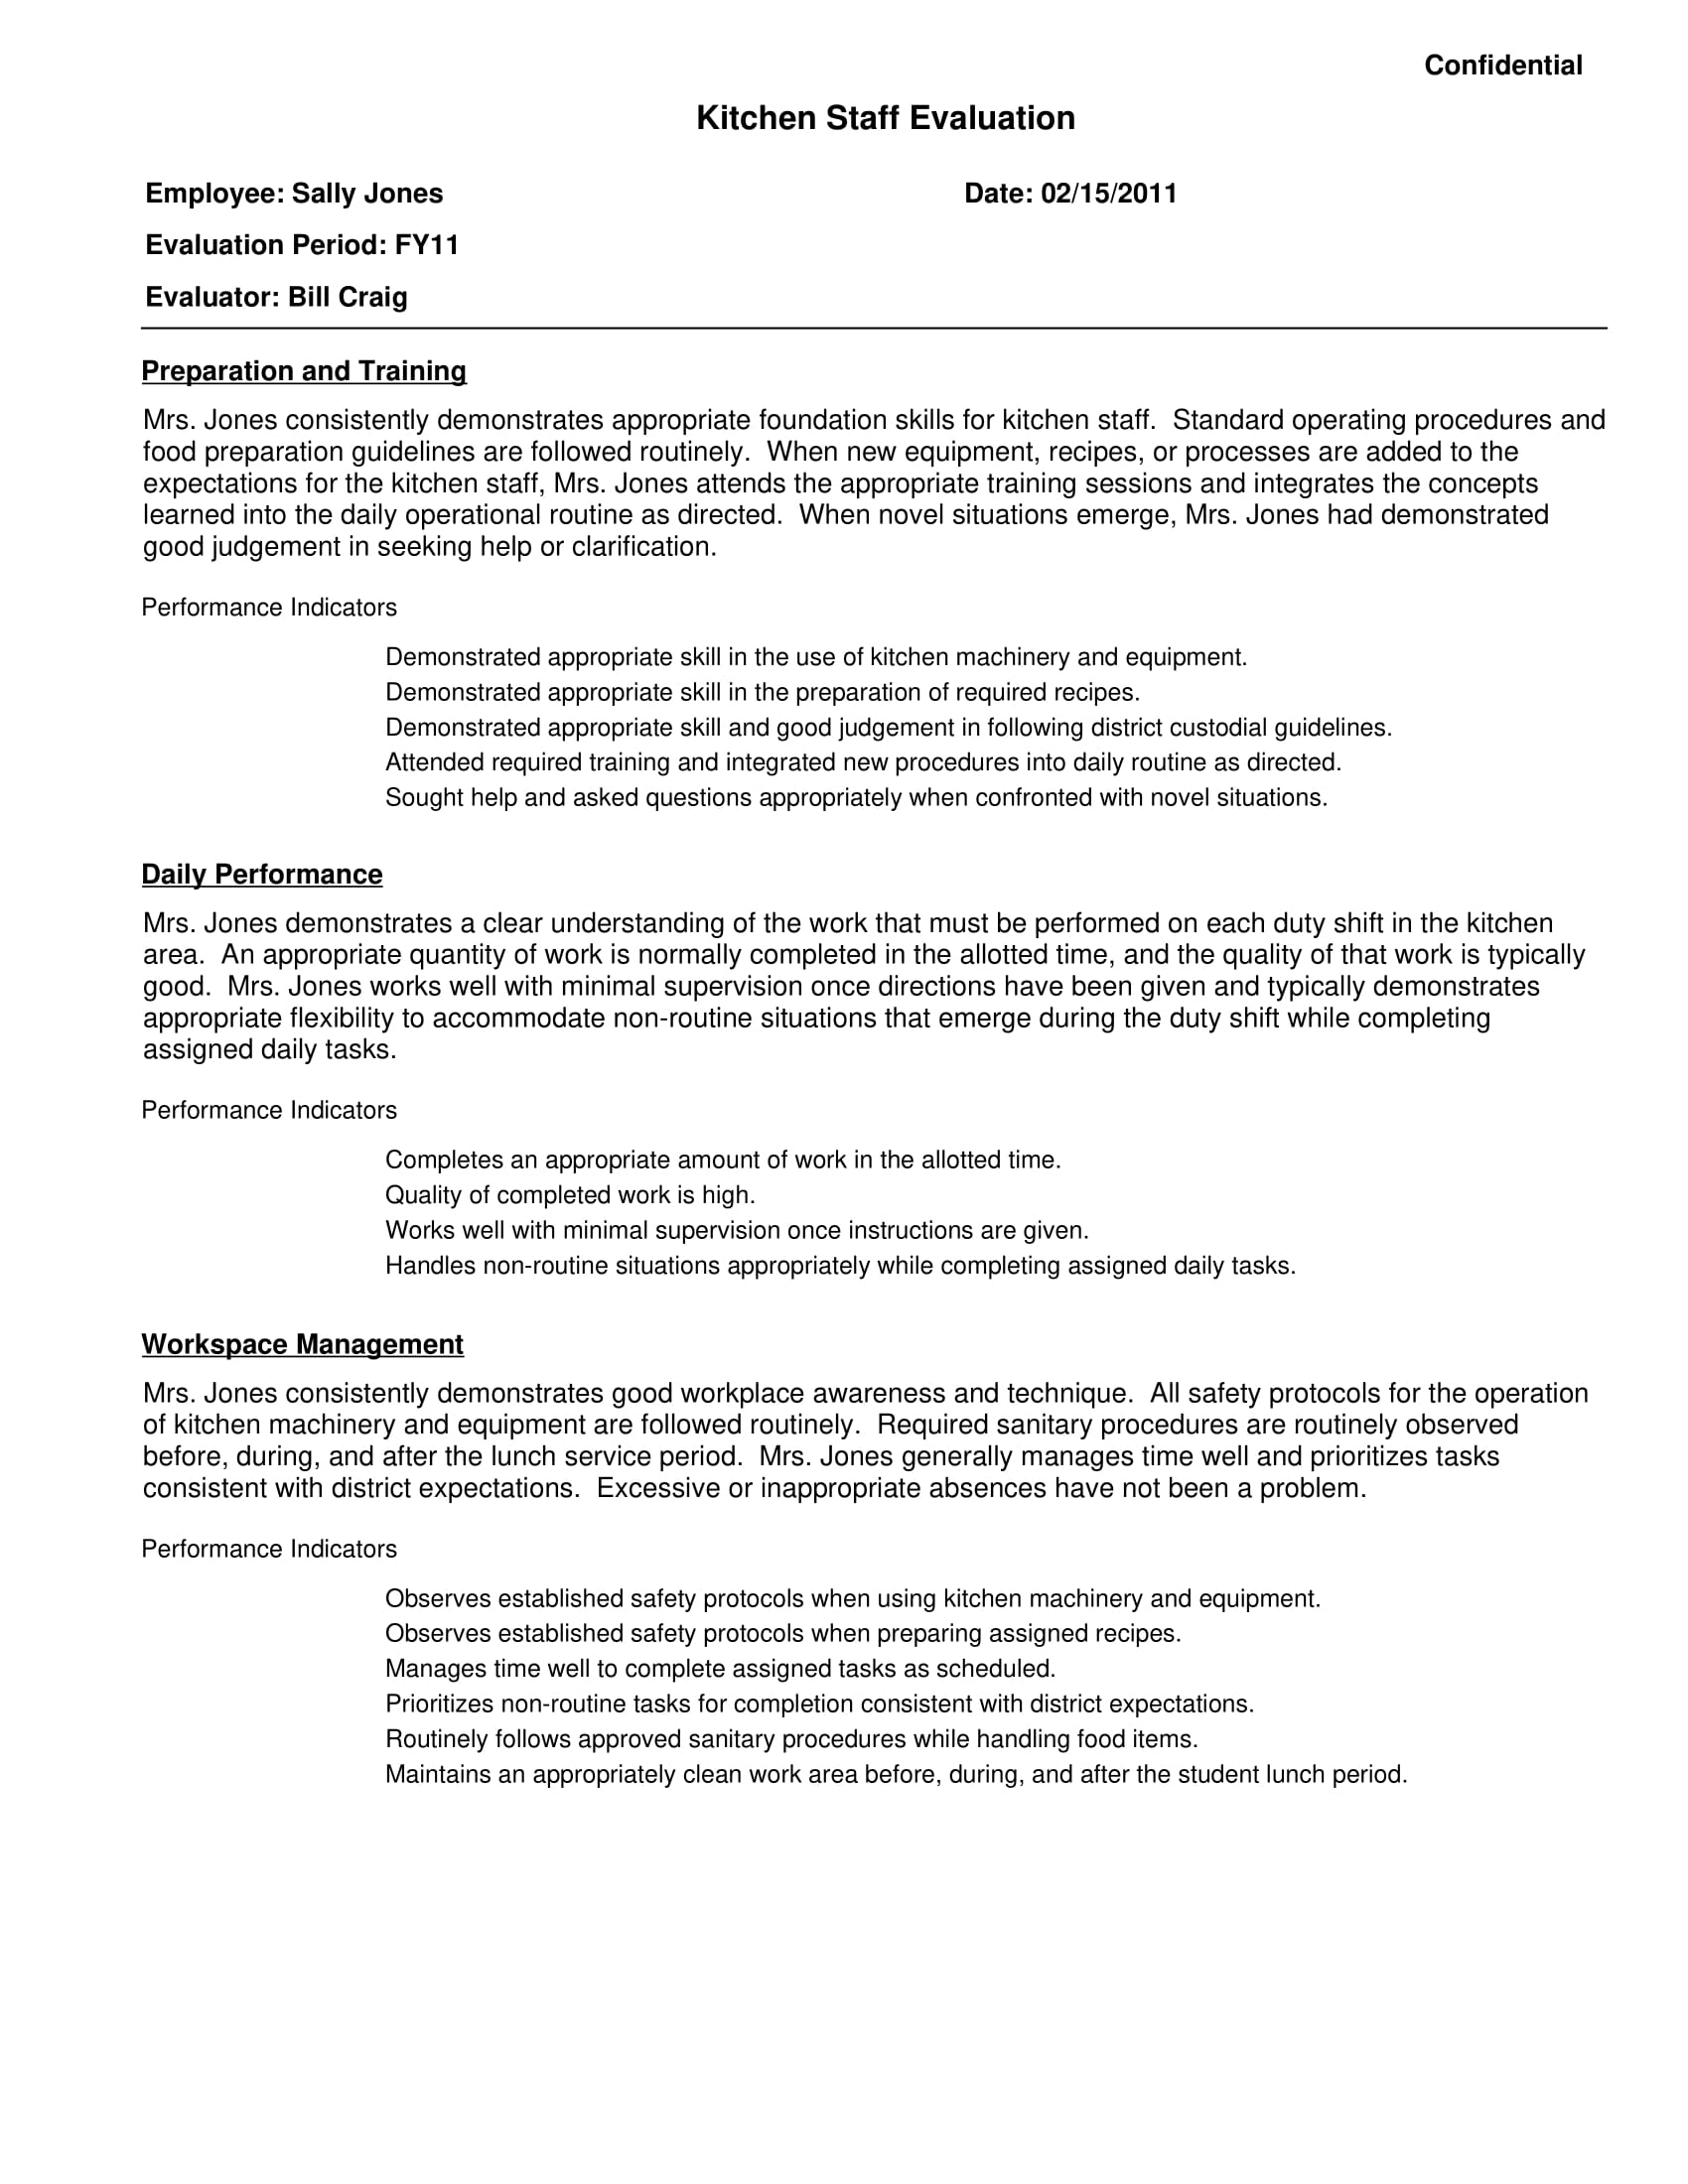 kitchen staff evaluation form 1